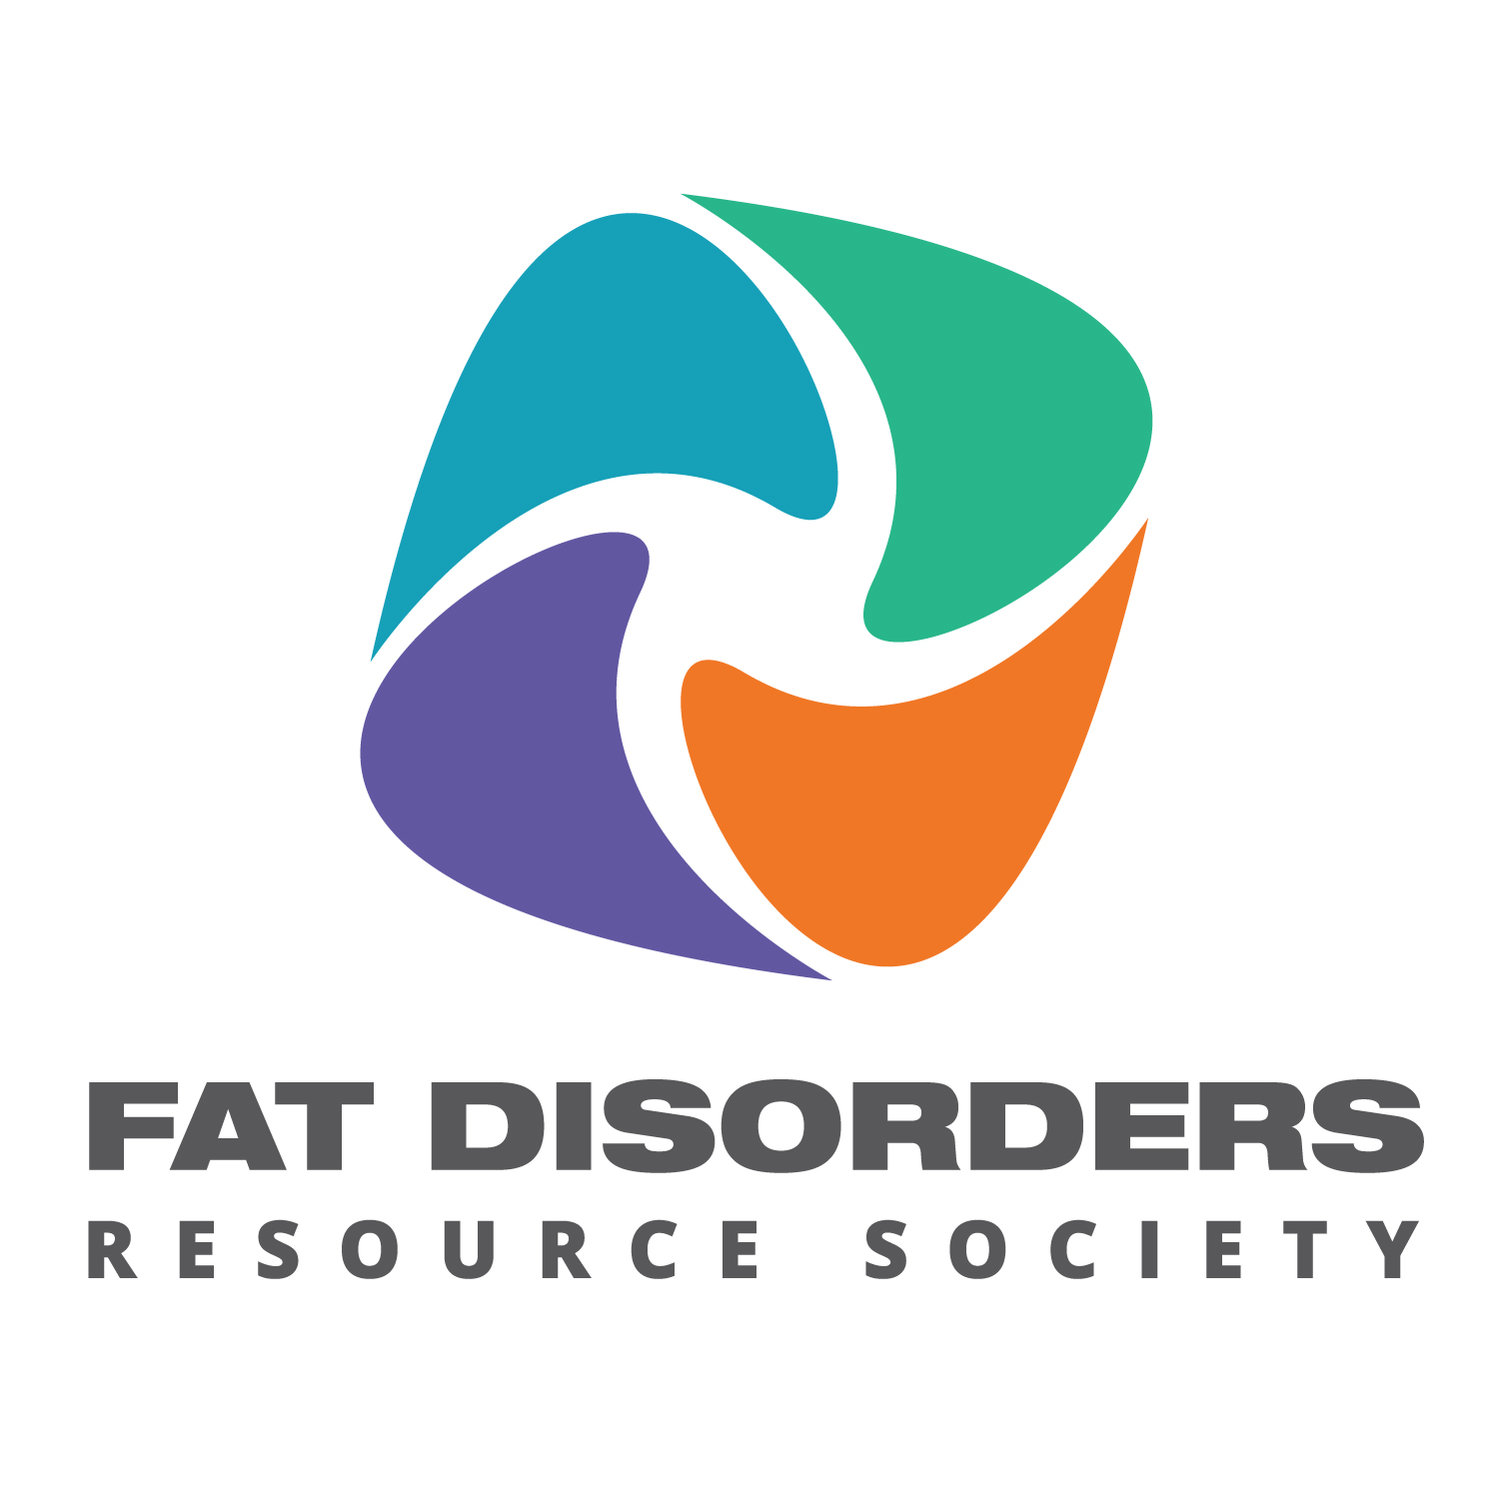 Fat Disorders Resource Society